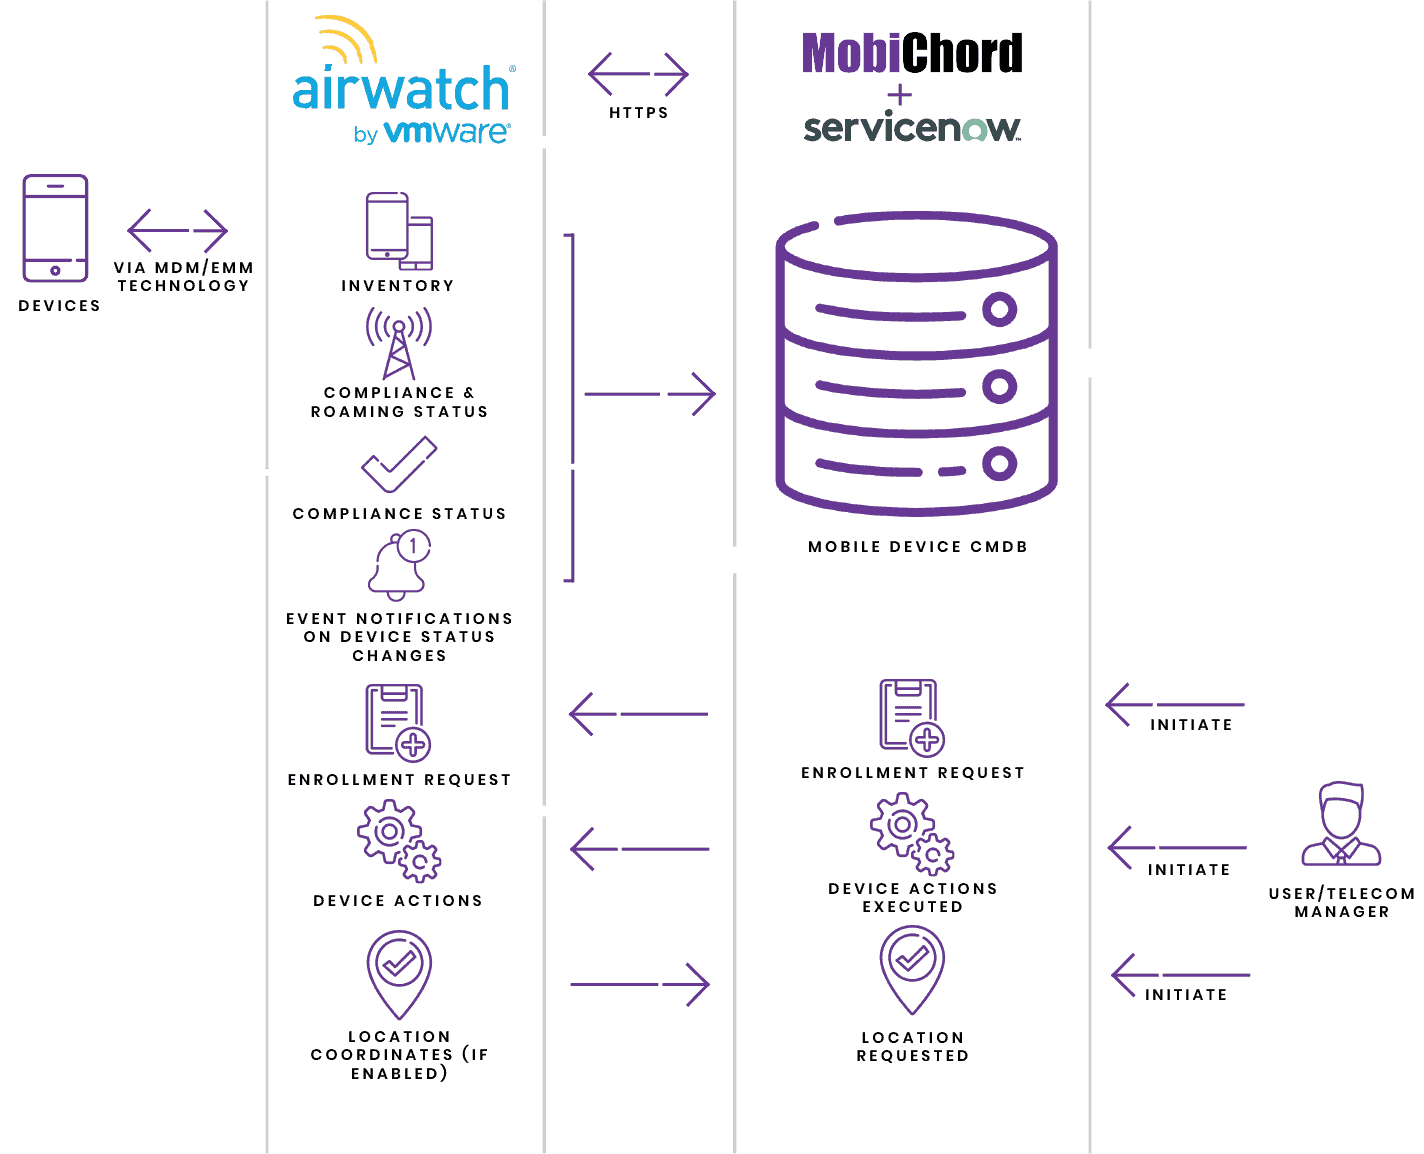 AirWatch ServiceNow Integration